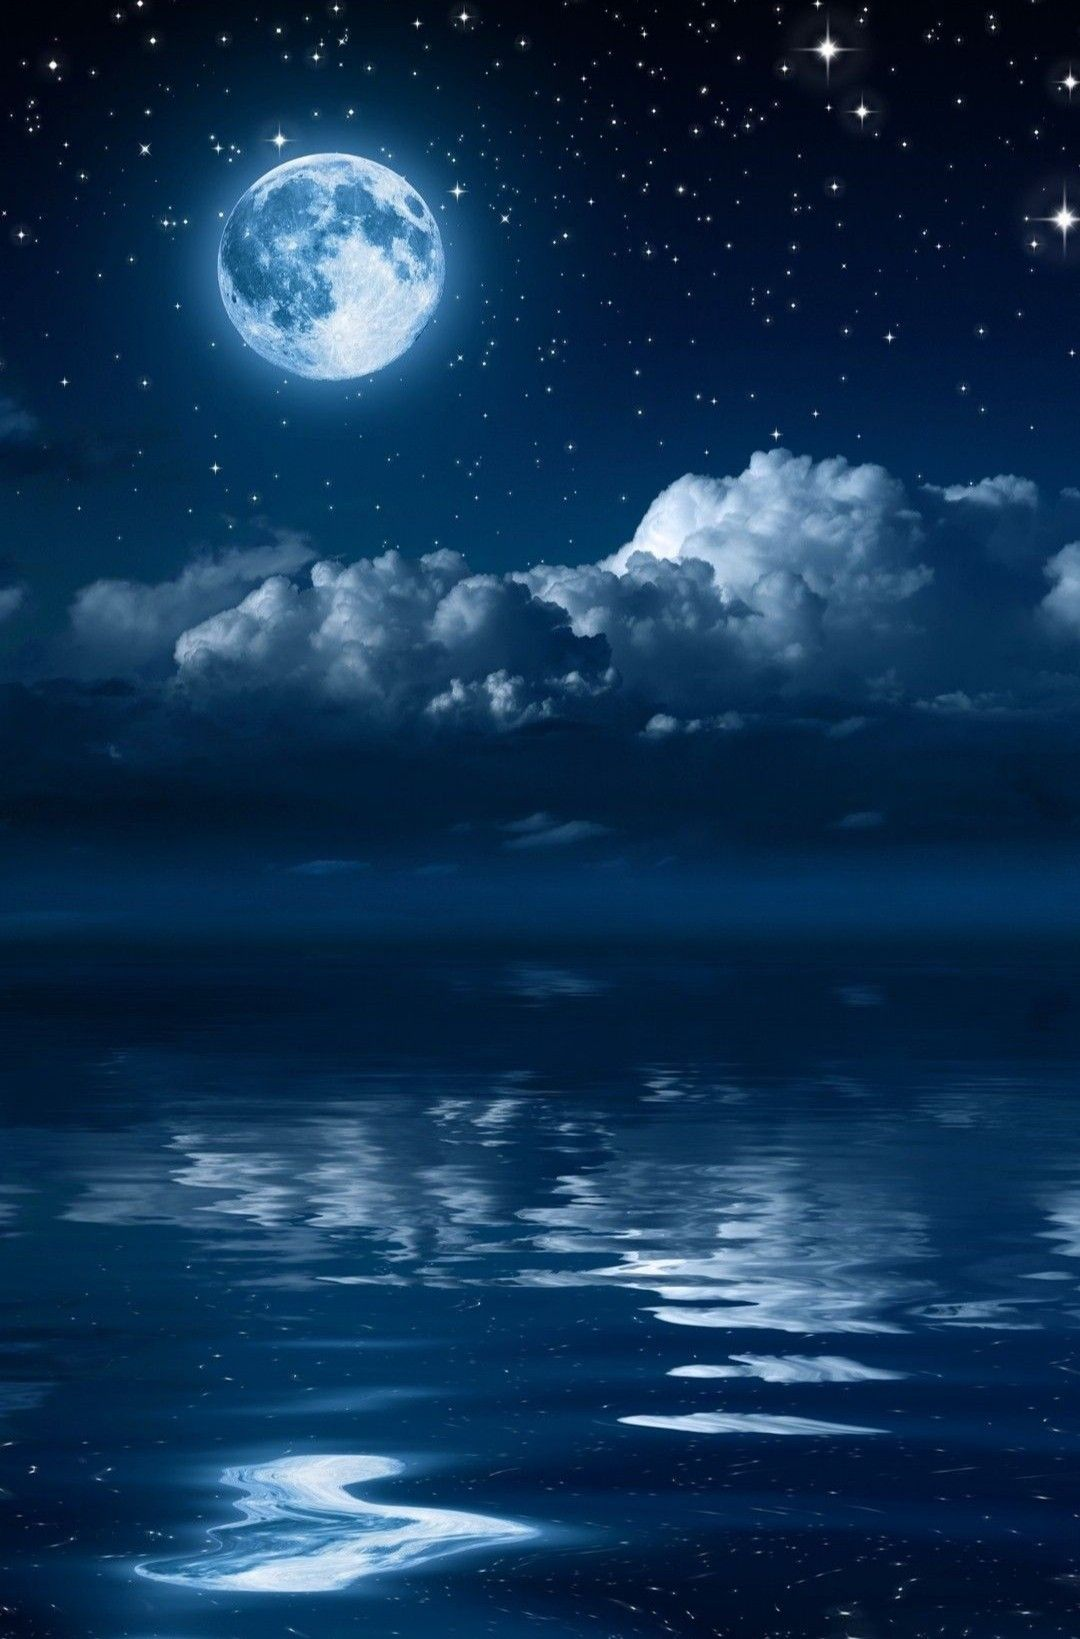 Pin By Orin Garner On Eye Candy Sky Art Beautiful Moon Moon Art